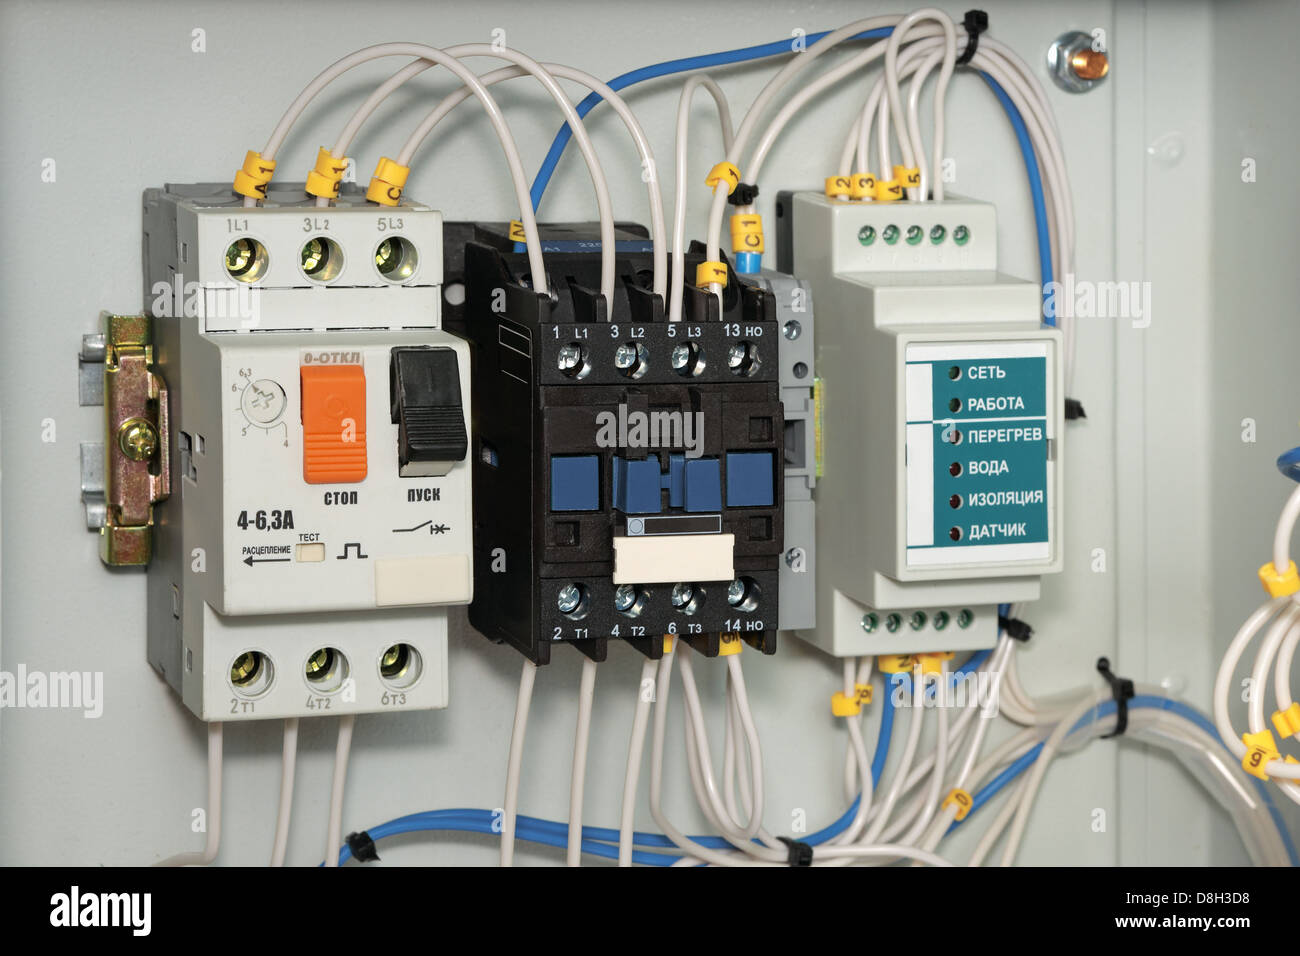 Electrical Panel Control Power Electric Circuit Energy Stock Circuits And Wiring Component Fuse Line System Industry Voltage Box Automatic